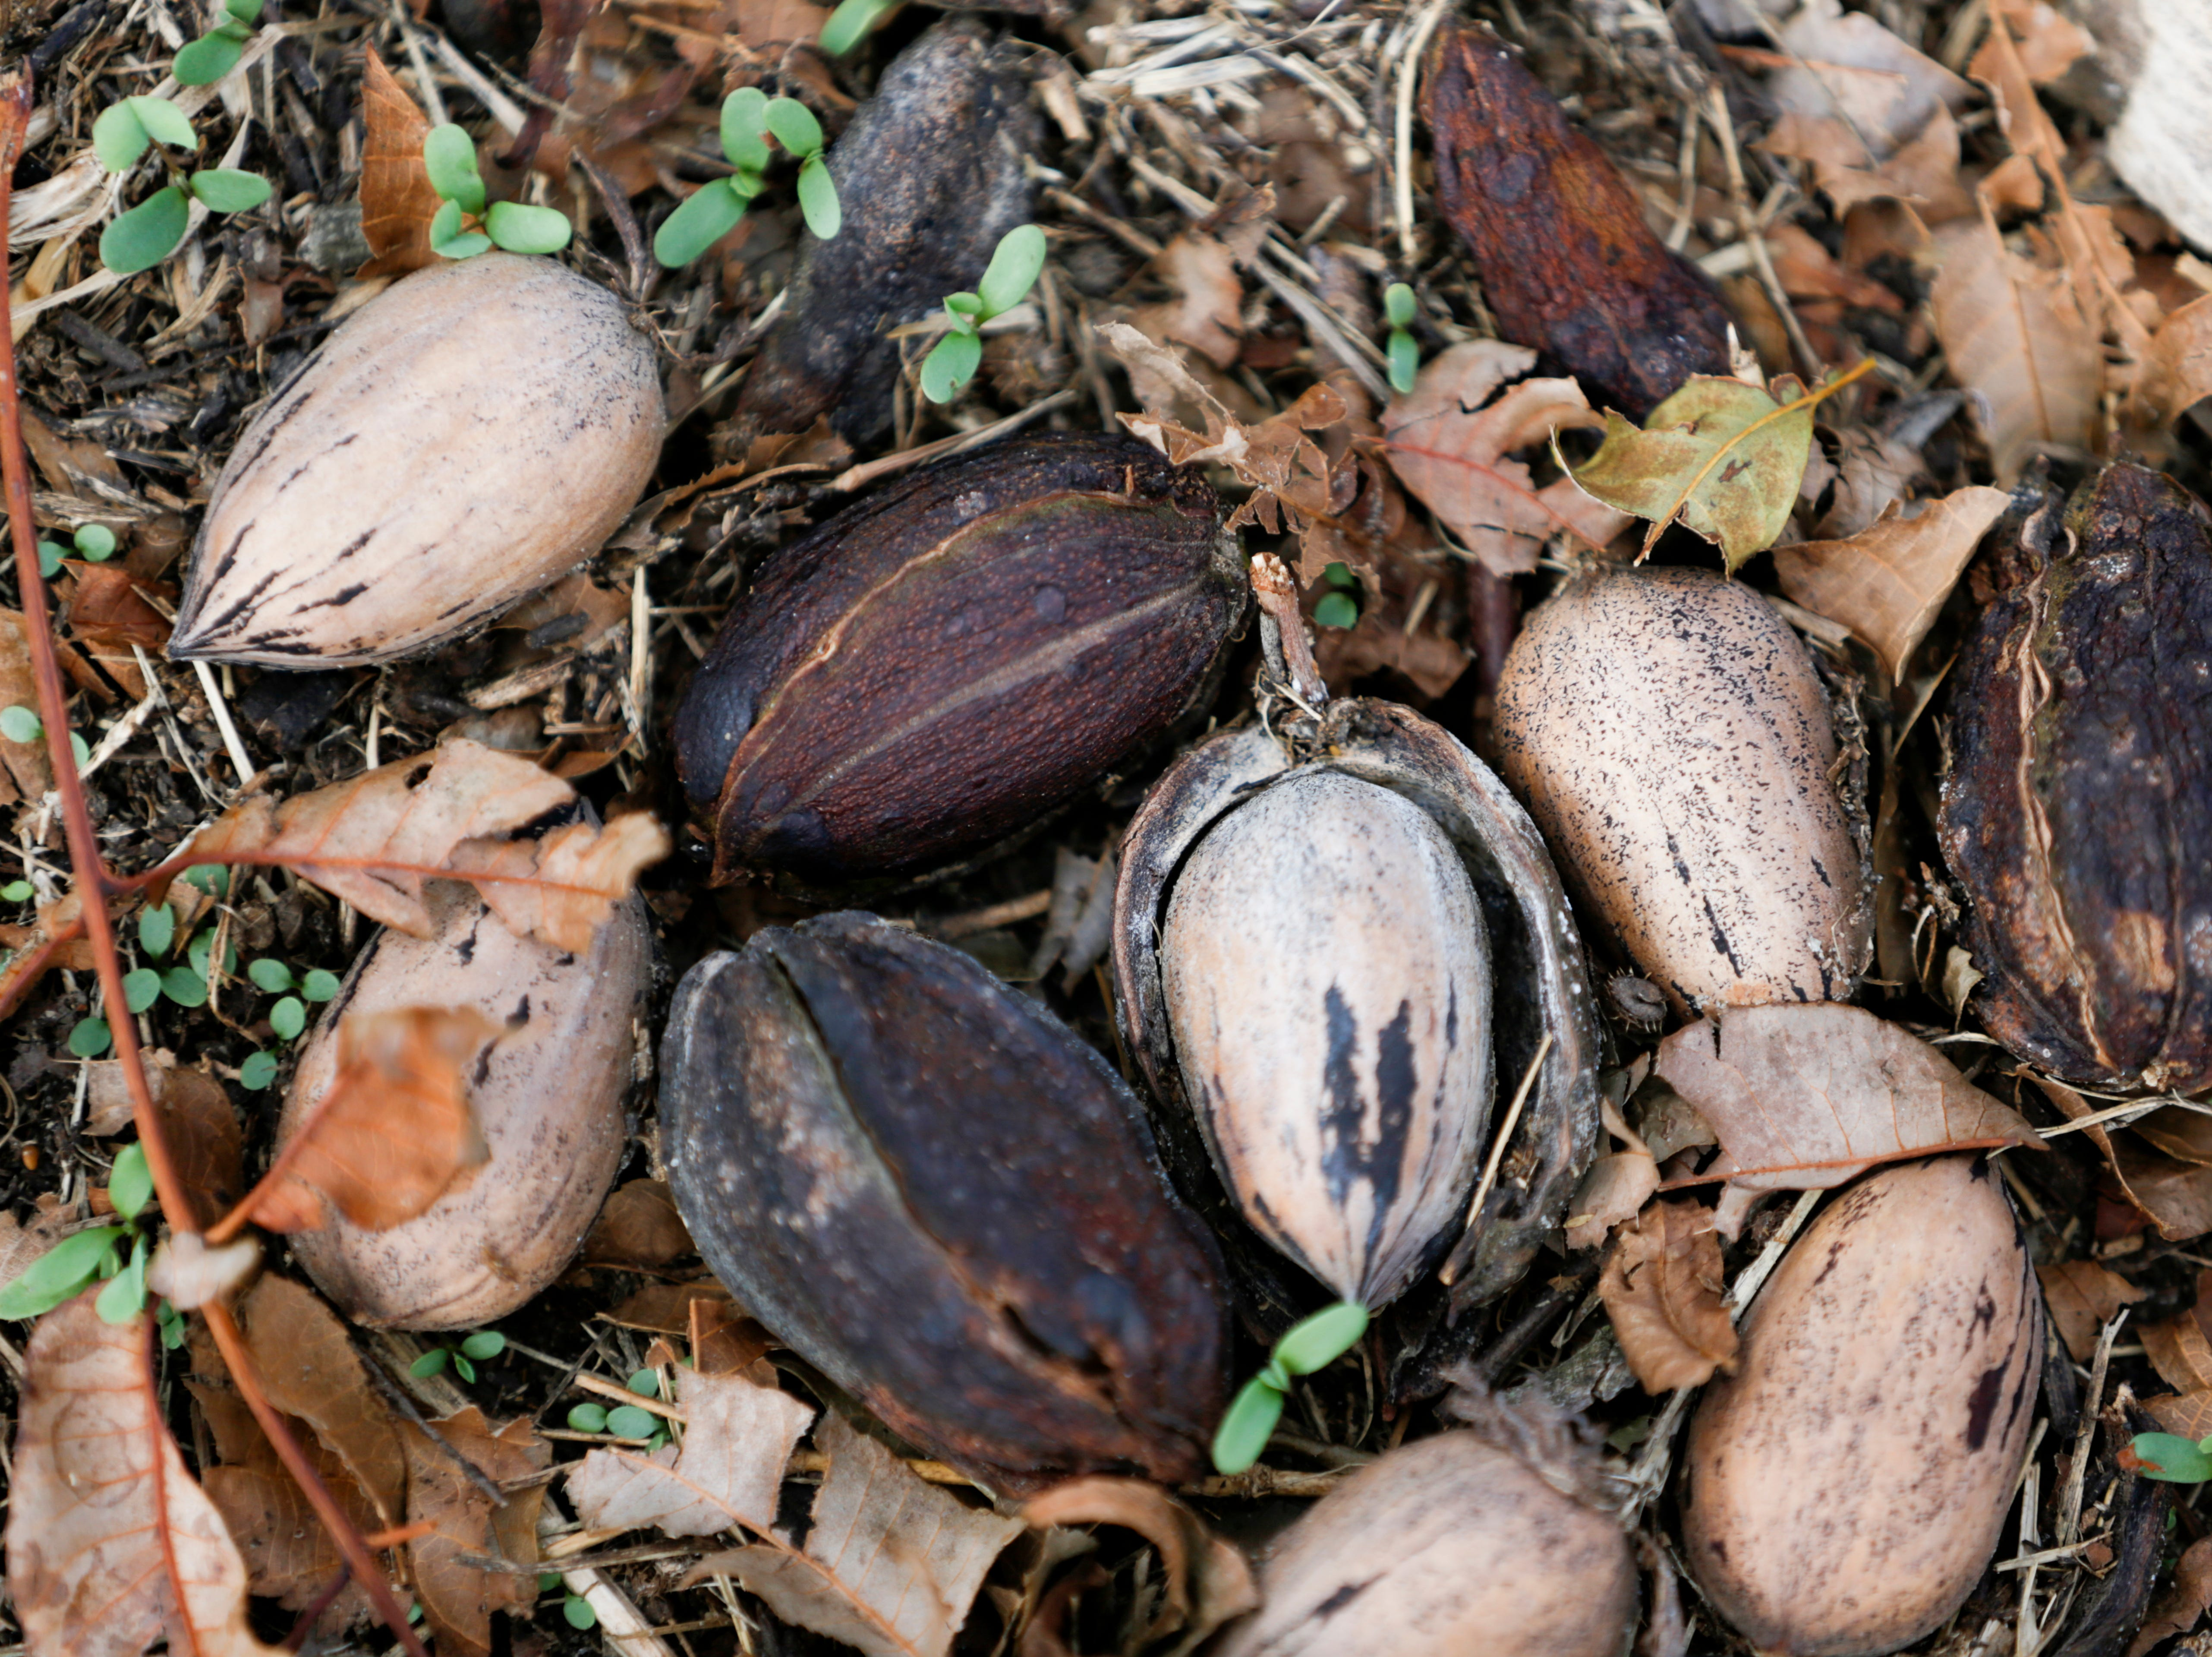 Fallen pecans sit in an orchard on Seldom Rest Farm in Donalsonville, Ga. in the aftermath of Hurricane Michael Wednesday, Oct. 17, 2018.